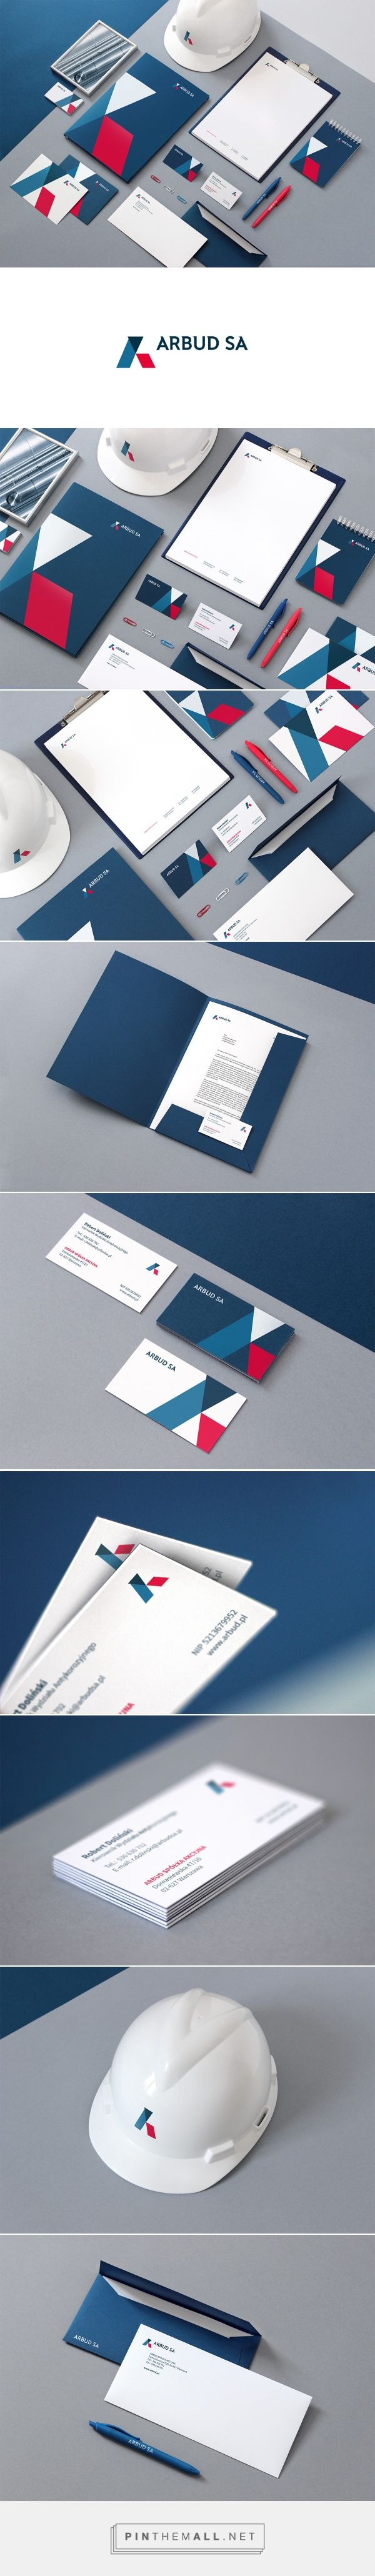 ARBUD SA Branding on Behance | Fivestar Branding – Design and Branding Agency…